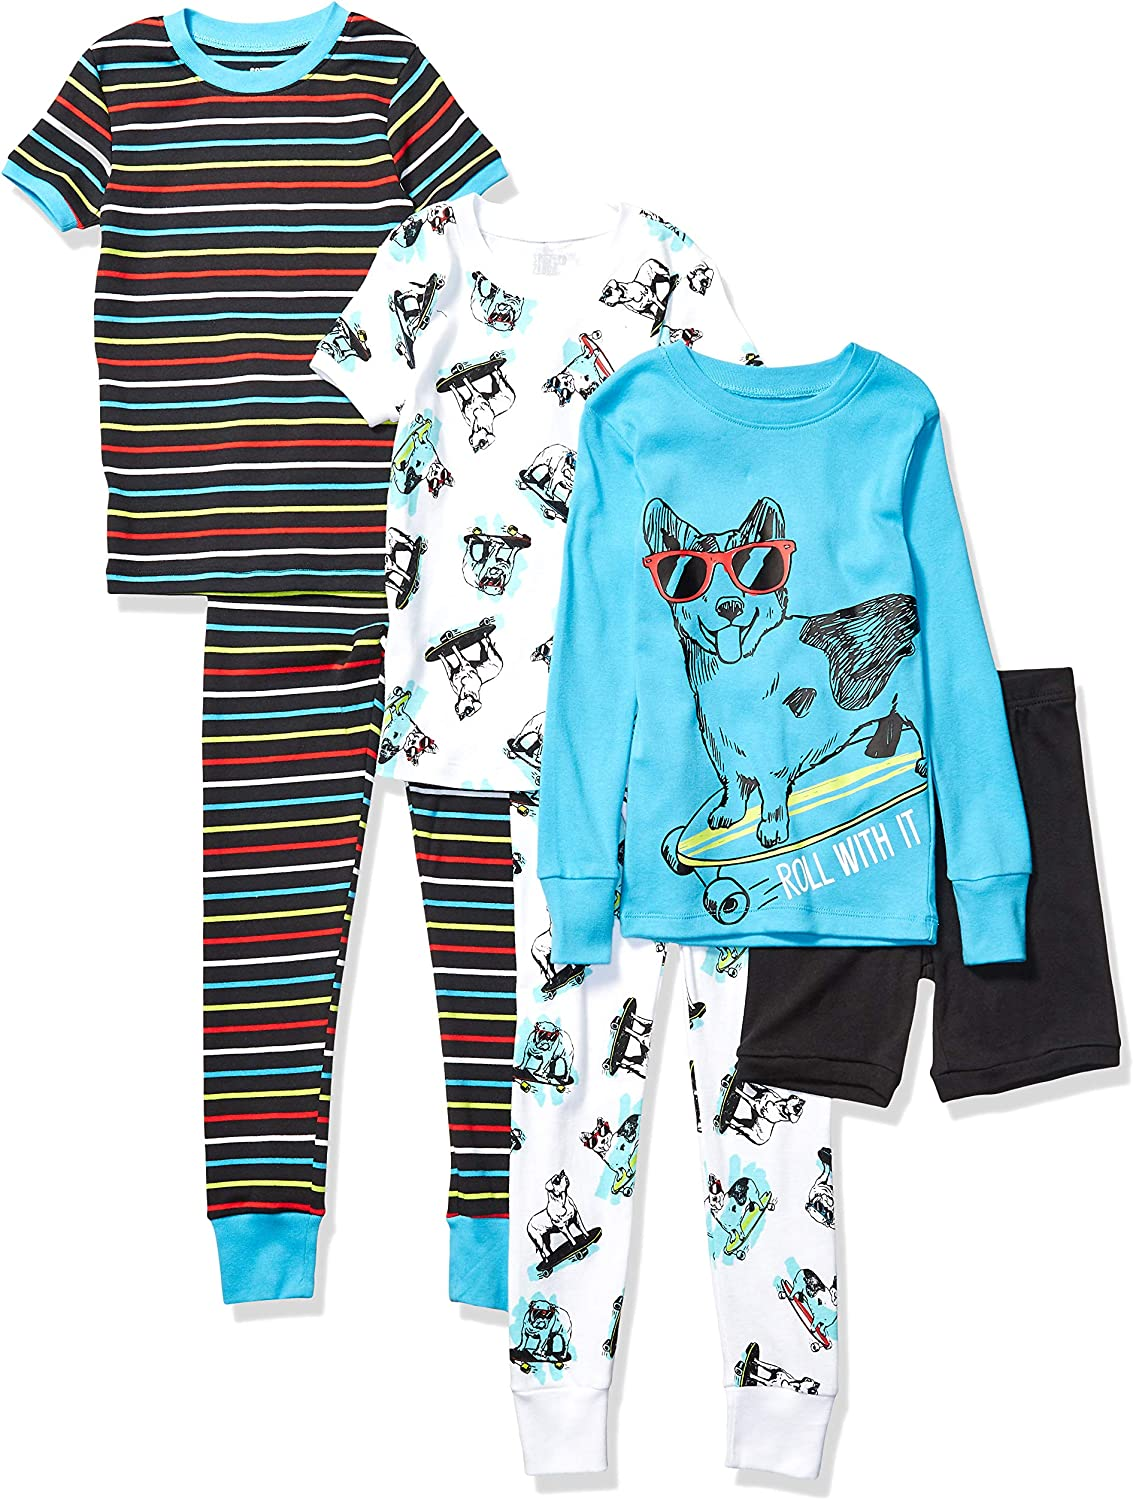 Marchio Amazon - Spotted Zebra 6-Piece Snug-Fit Cotton Pajama Set Unisex-Bambini